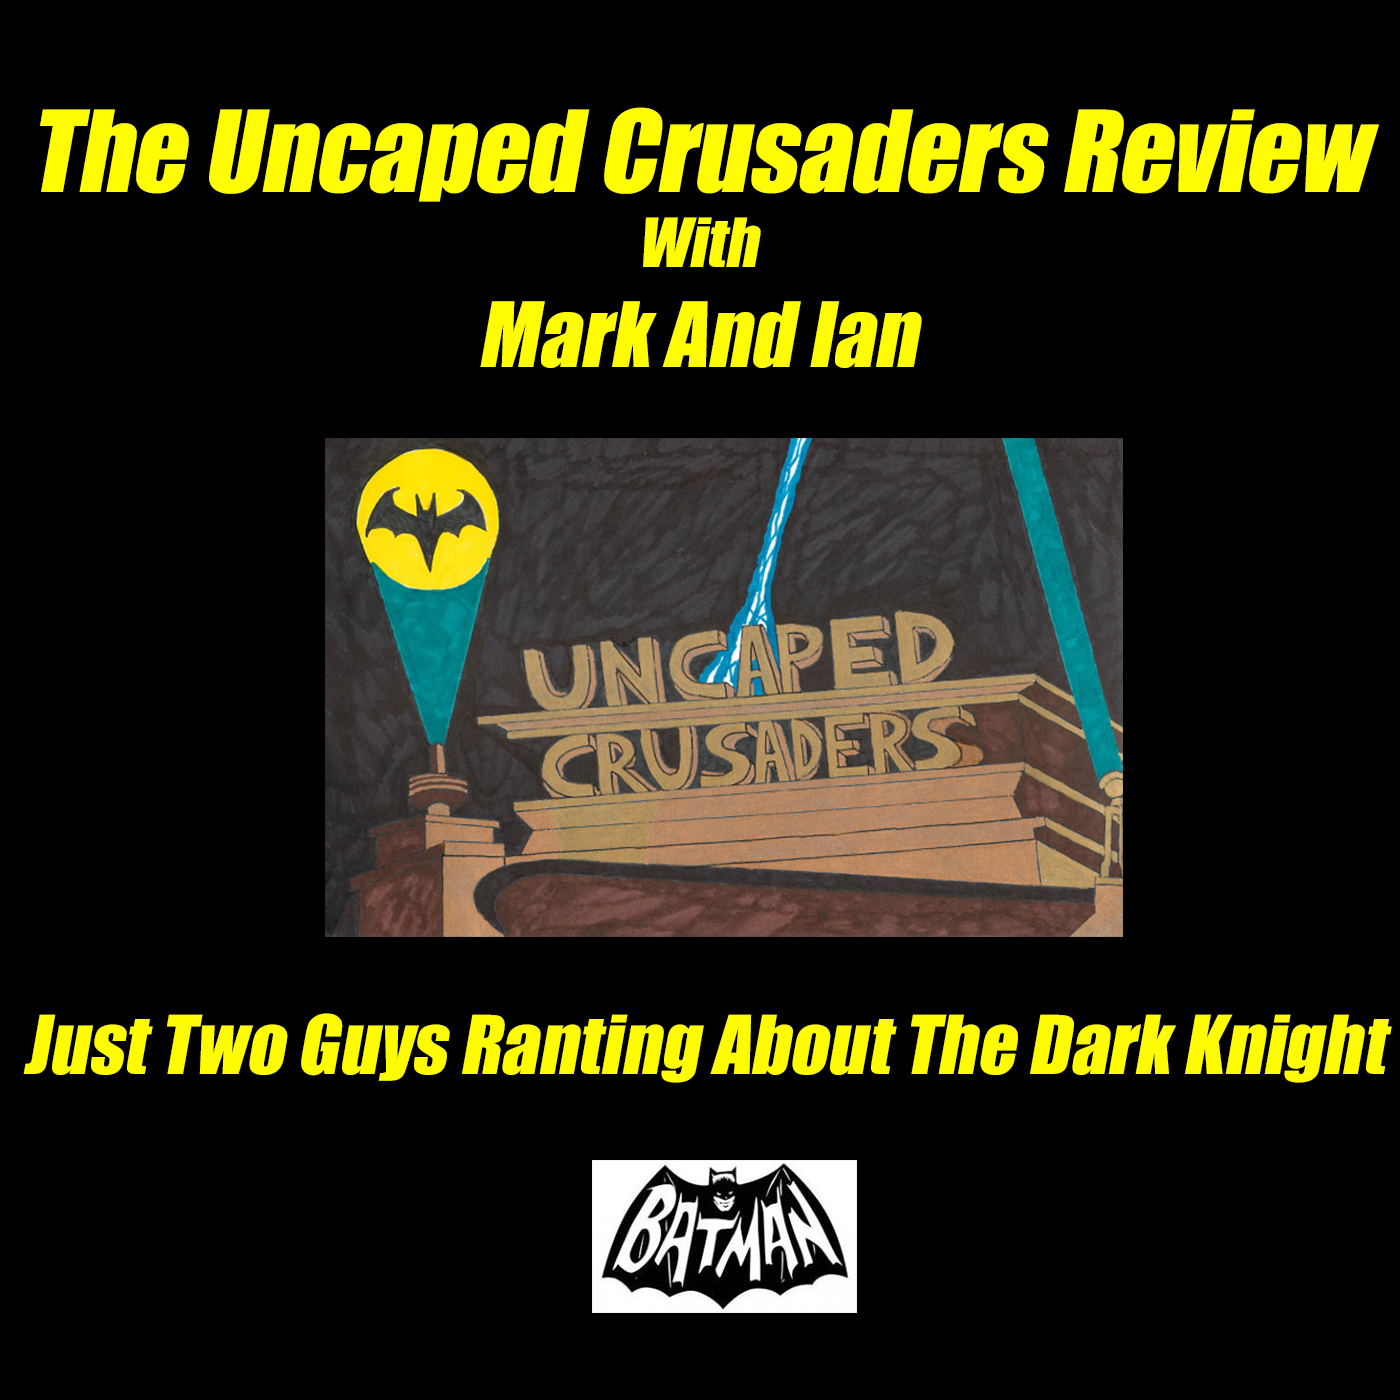 The Uncaped Crusaders Review